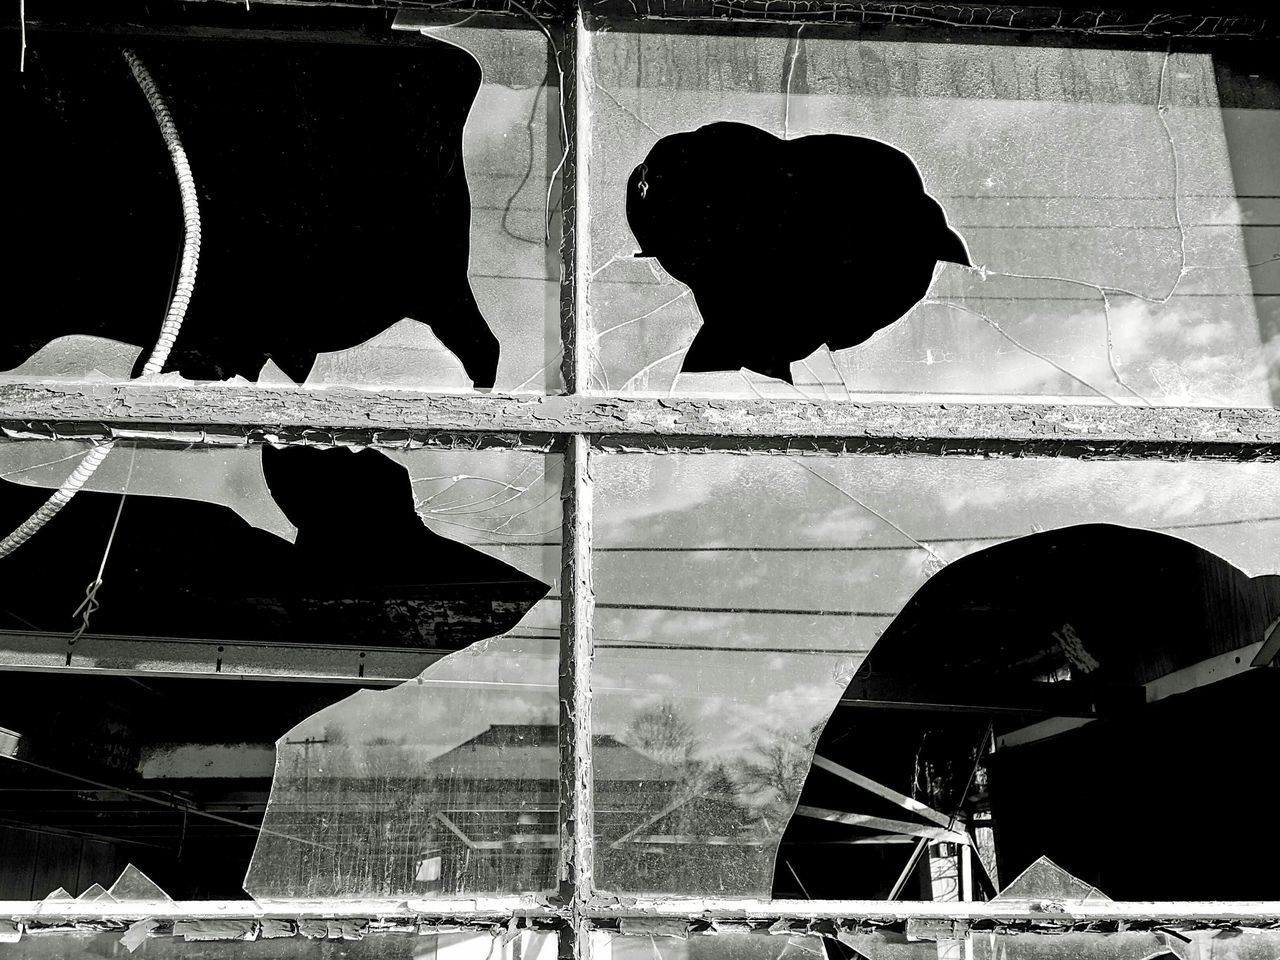 Abandoned Factory Abandoned Buildings Day Built Structure Reflection_collection Close-up Outdoors Architecture Abandoned & Derelict Business Finance And Industry Bygone Era S6 No People Reflection In The Window Window Broken Glass Black And White Black & White Black And White Photography Eyeem Eyesore EyeEm Best Shots - Black + White